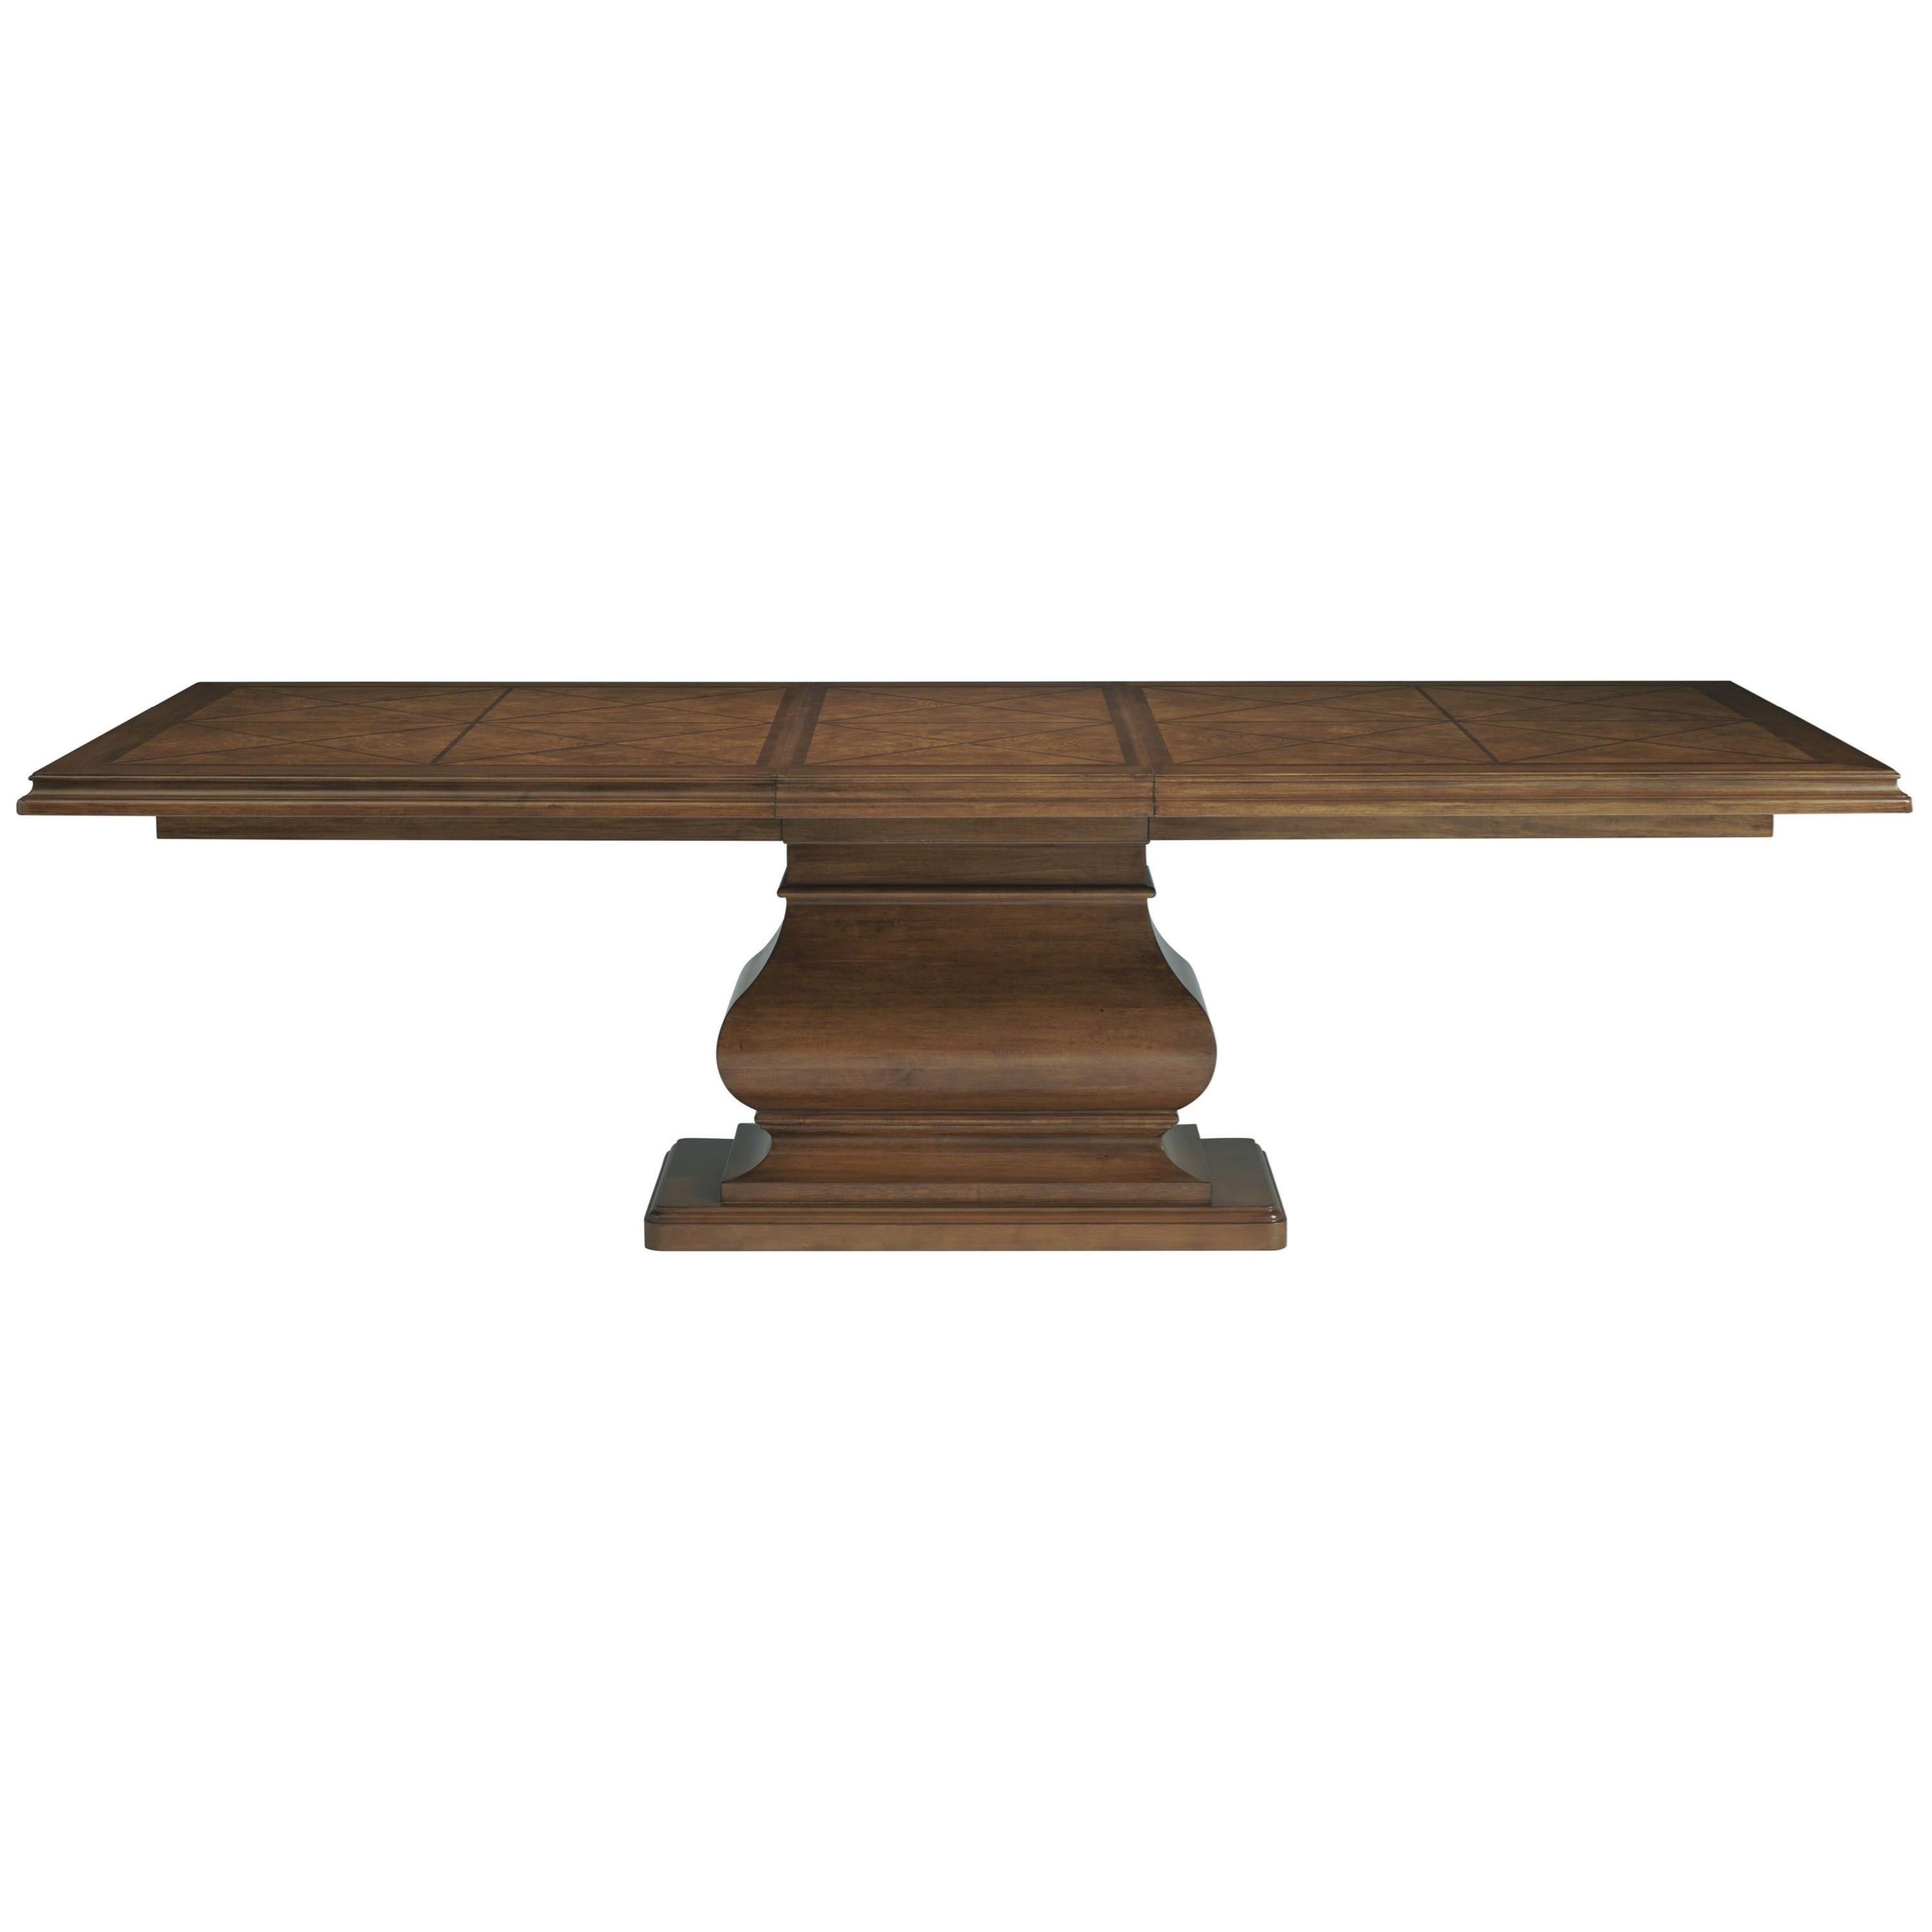 Traditions Kingsbury Kingsbury Dining Table  by Universal at Baer's Furniture